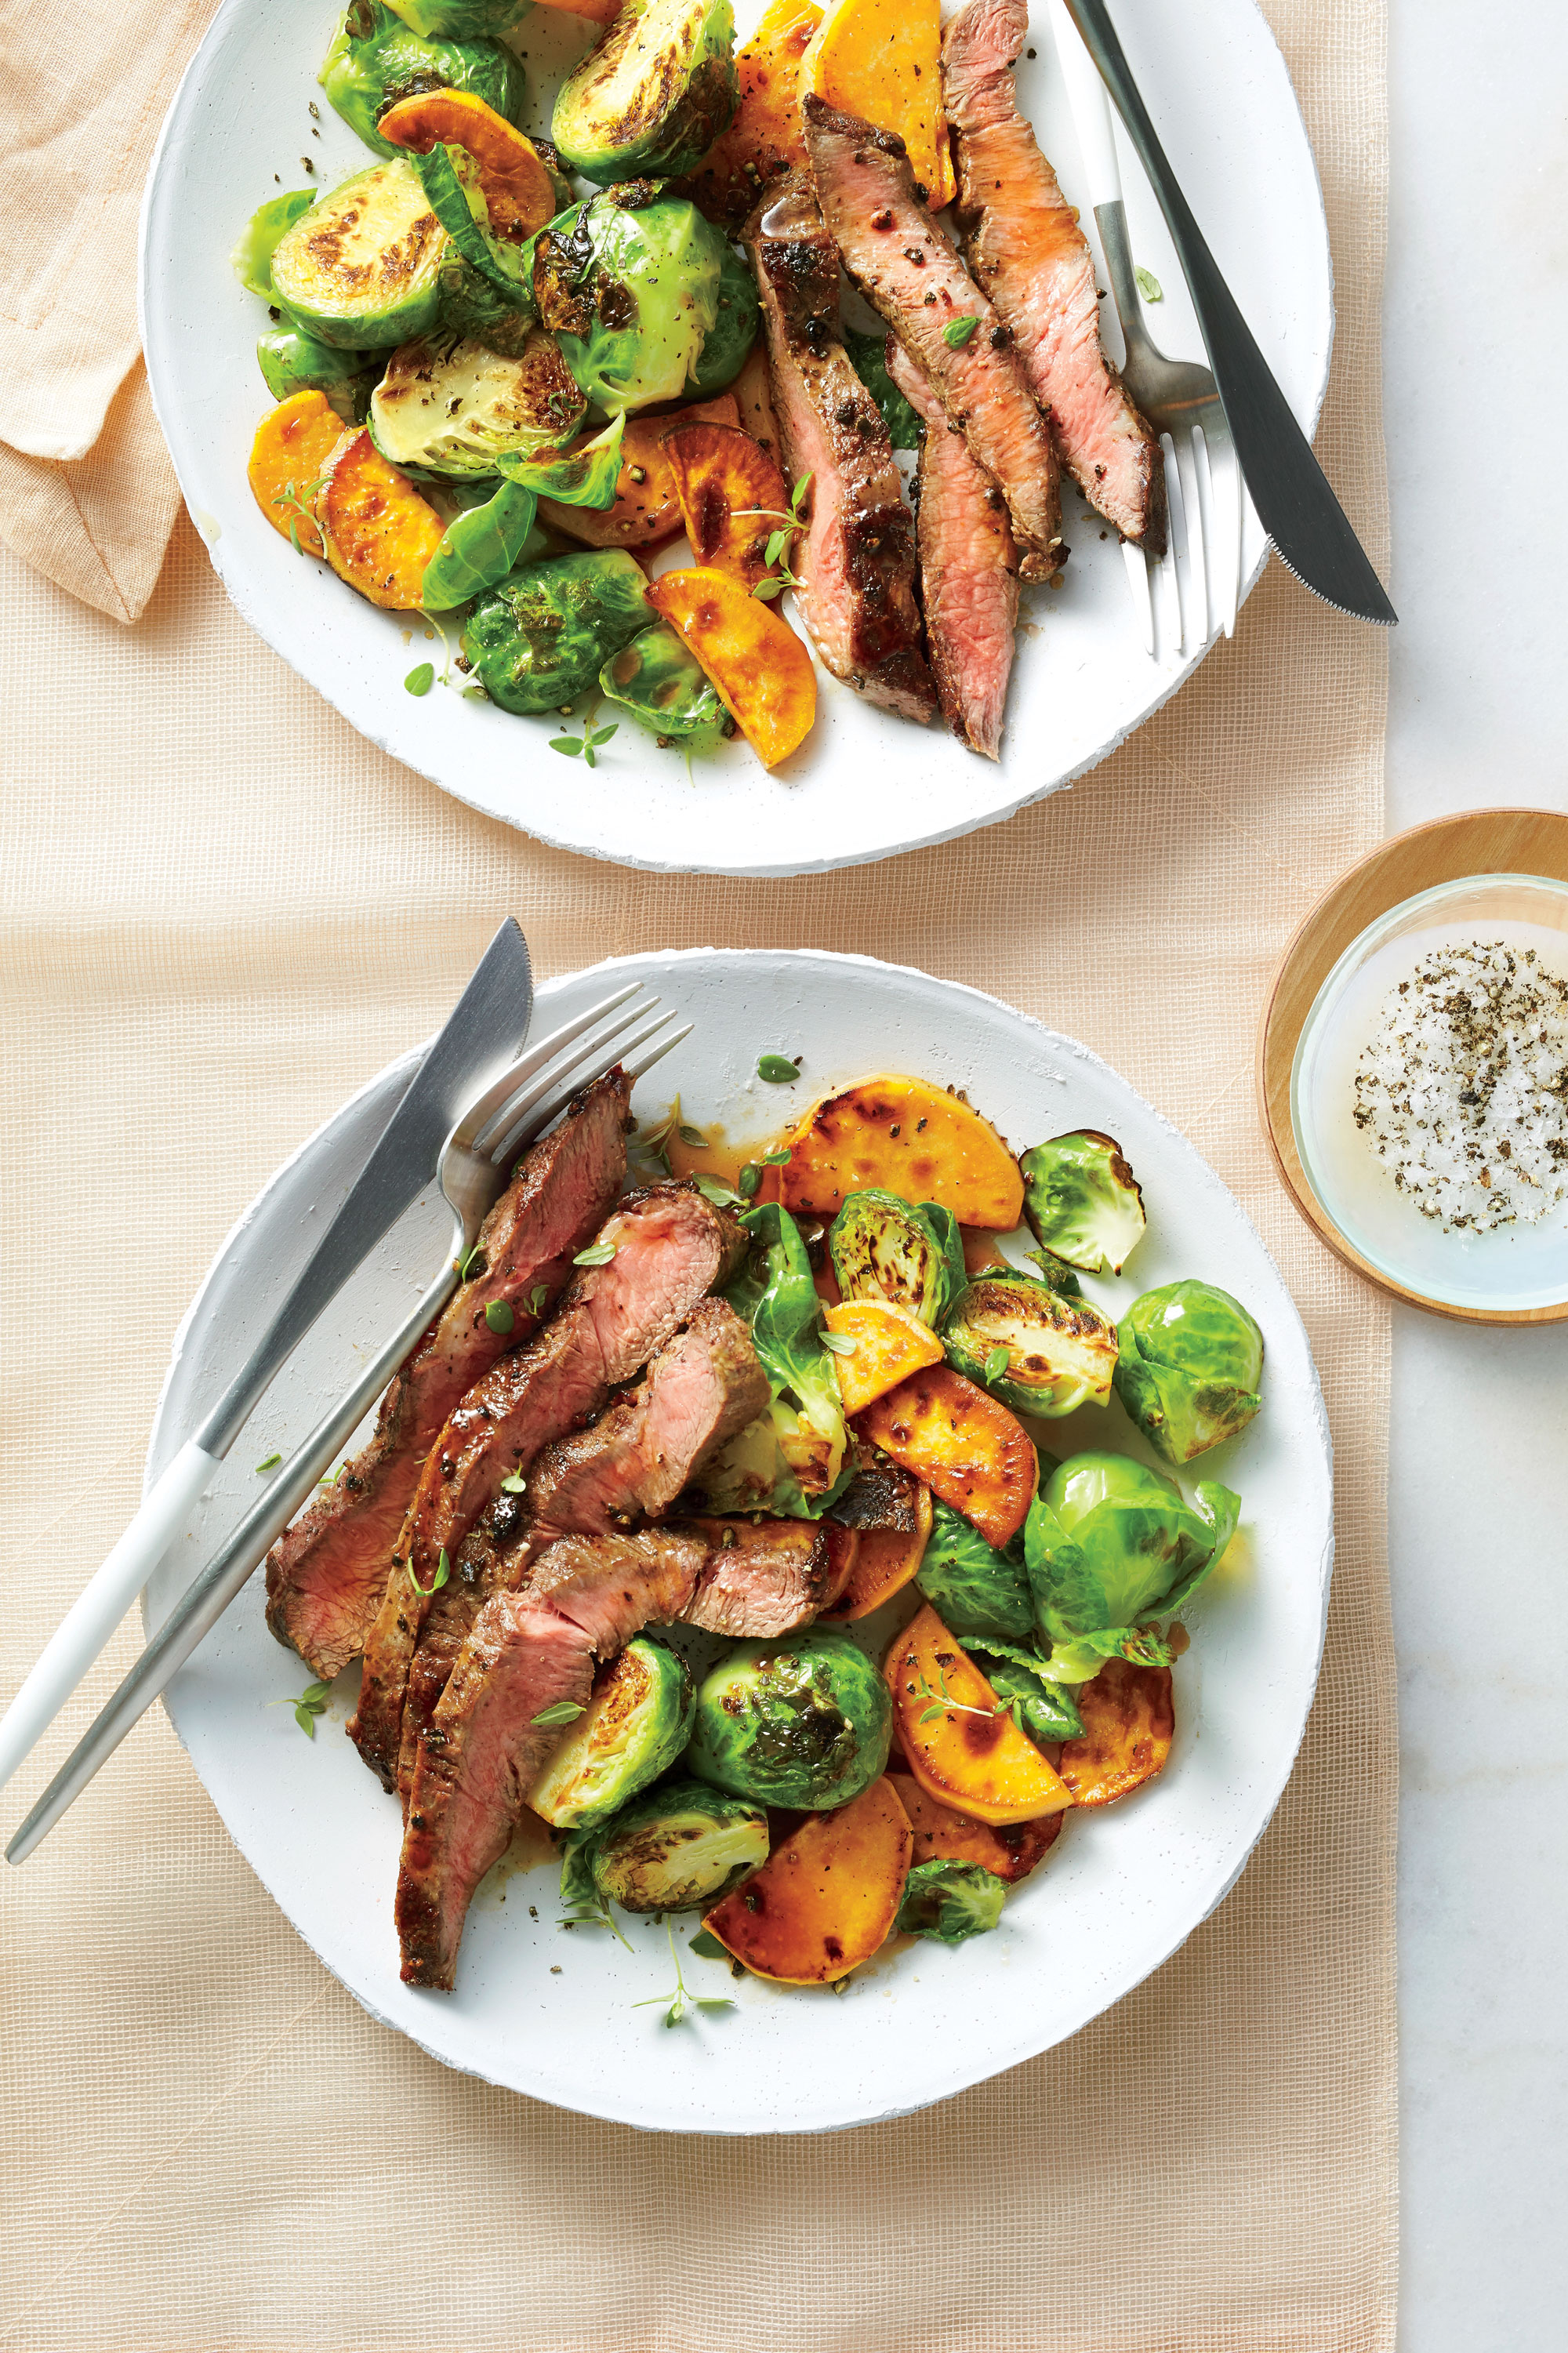 Broiled Flat Iron Steak With Brussels Sprouts And Sweet